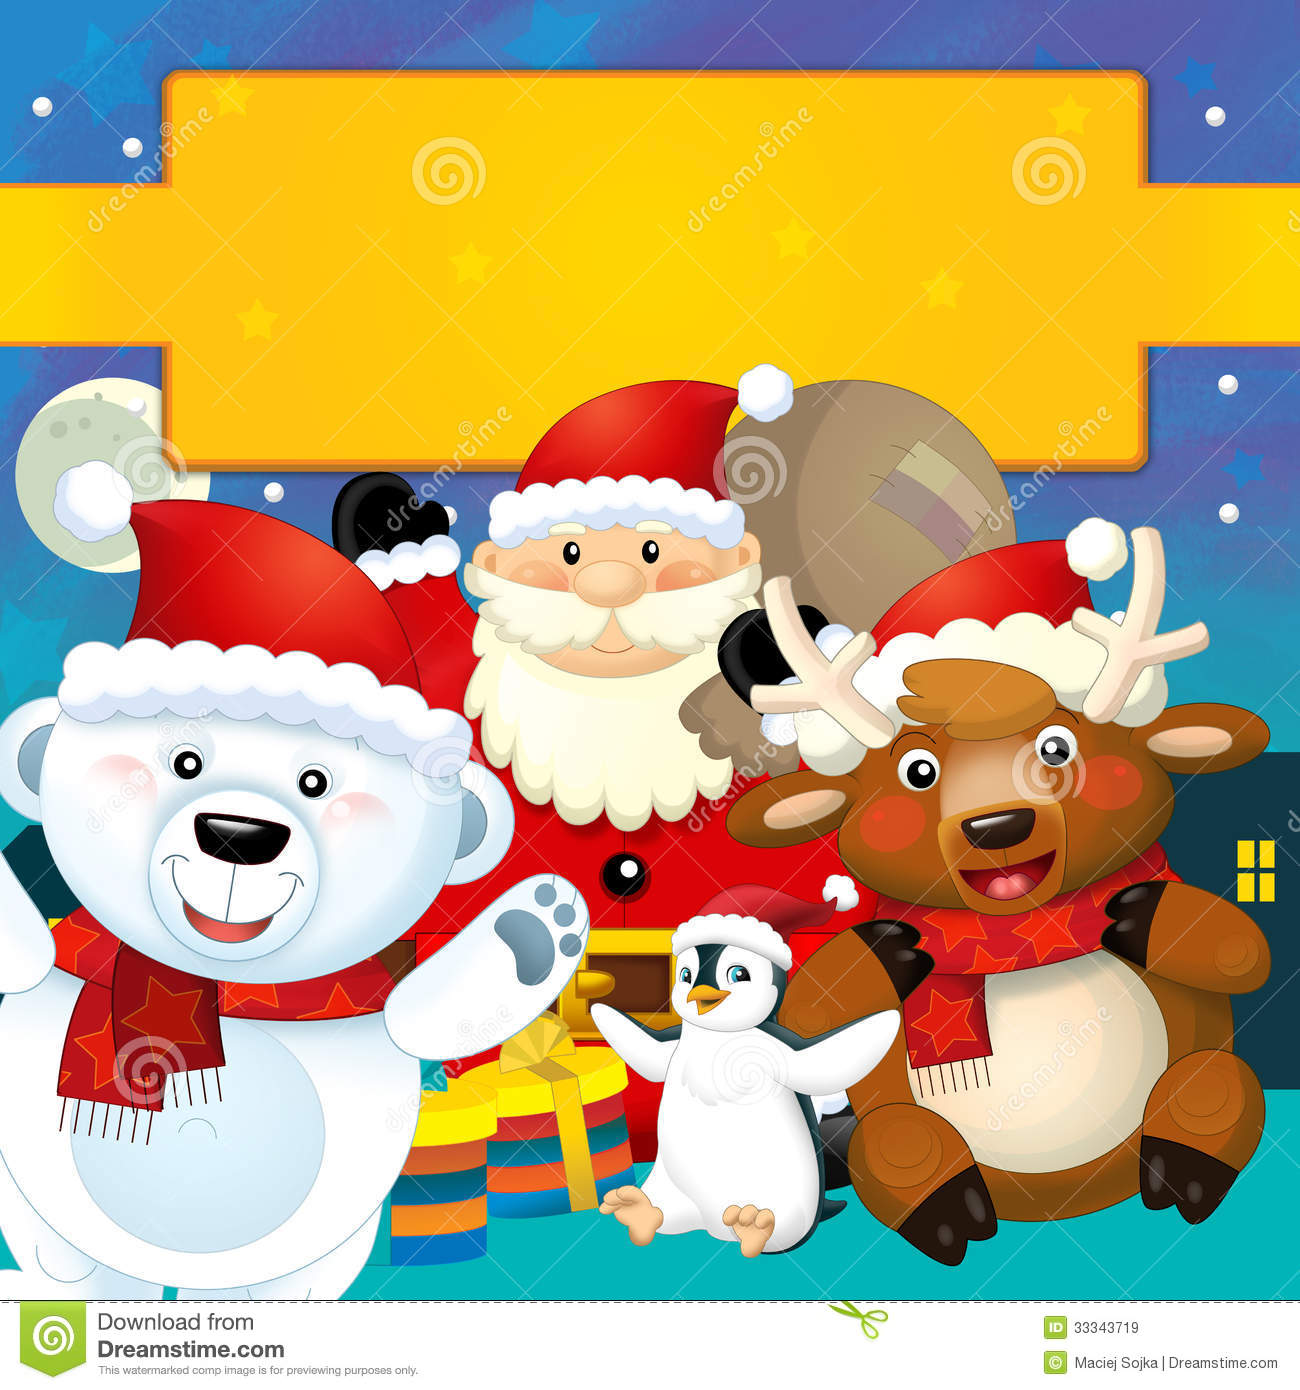 Christmas greetings for children more information djekova christmas greeting card christmas greetings for children kristyandbryce Gallery